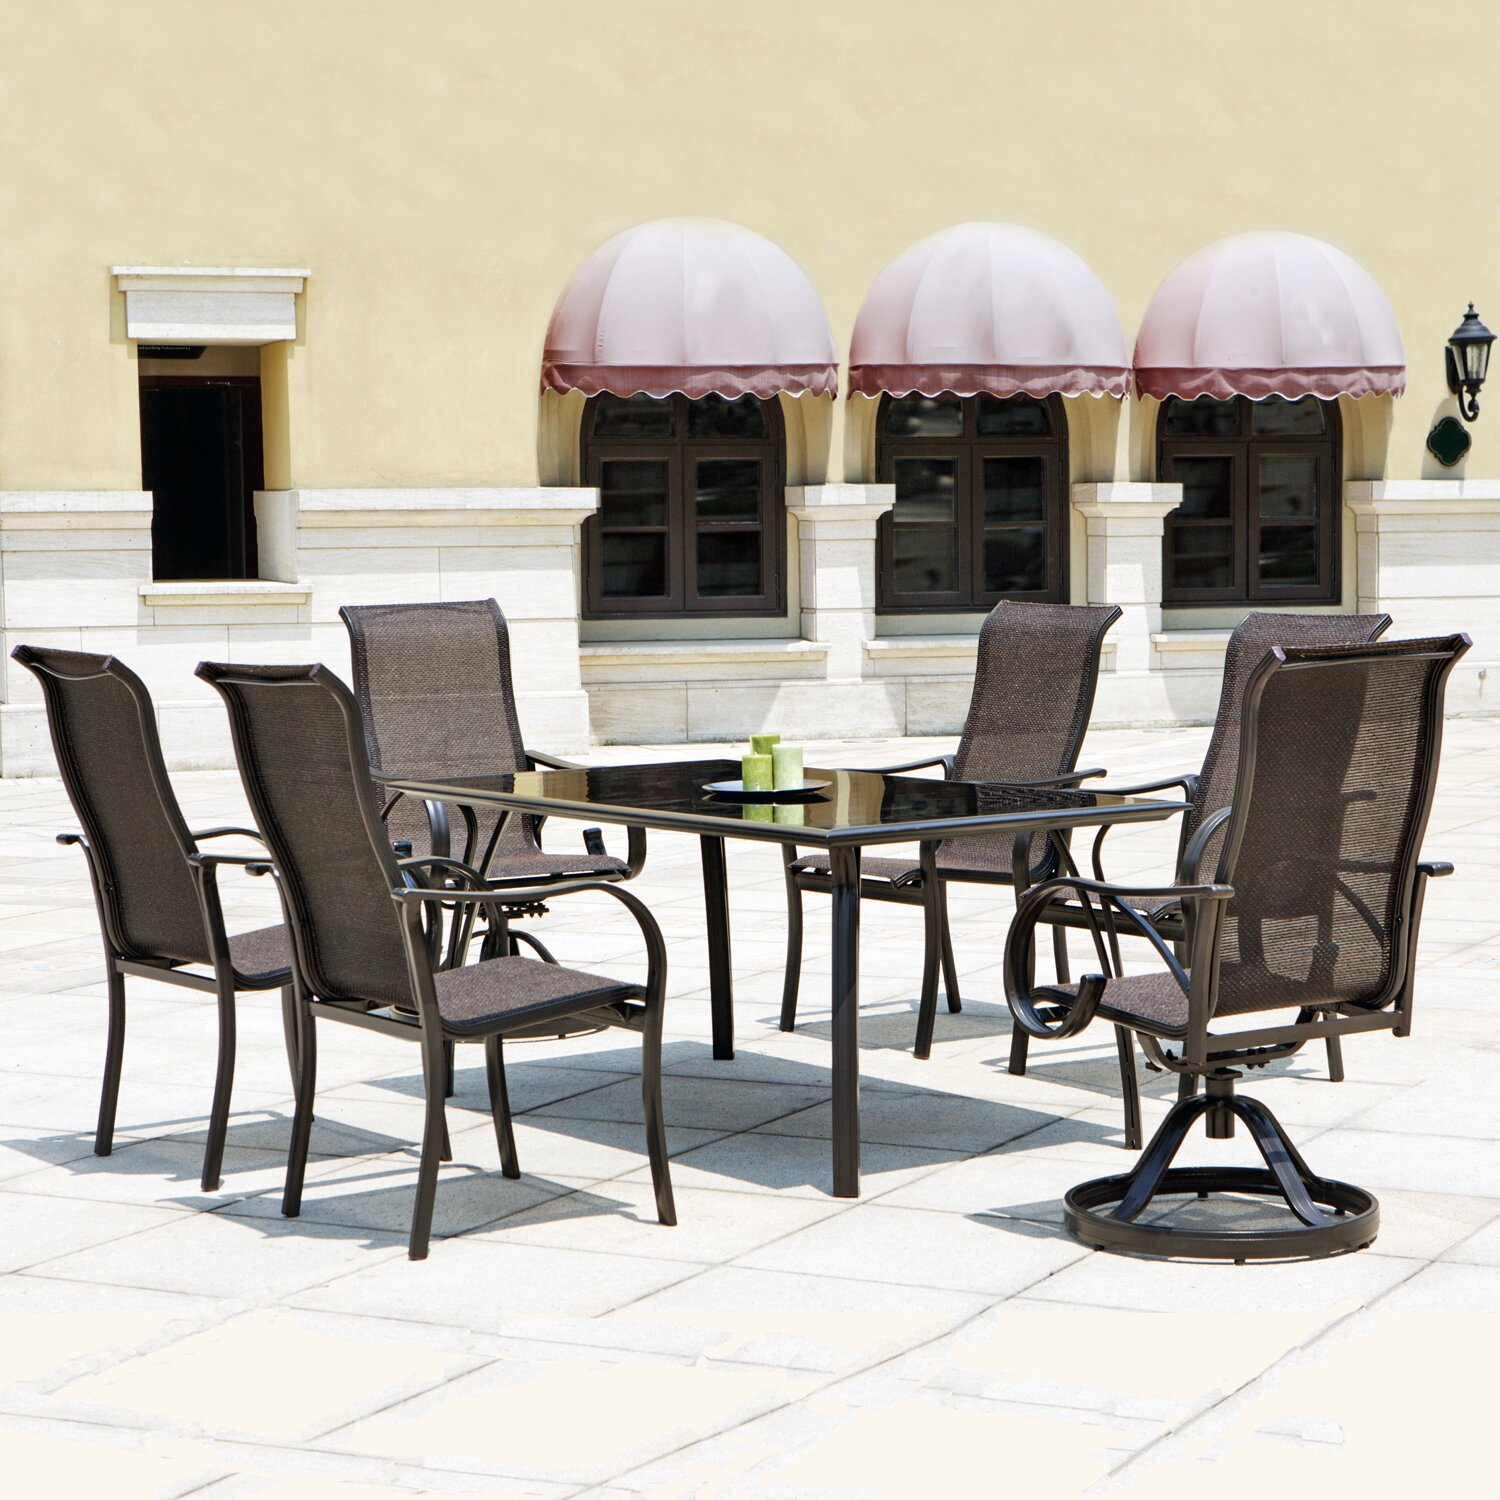 Mission Hills Coronado 7 Piece Dining Set & Reviews